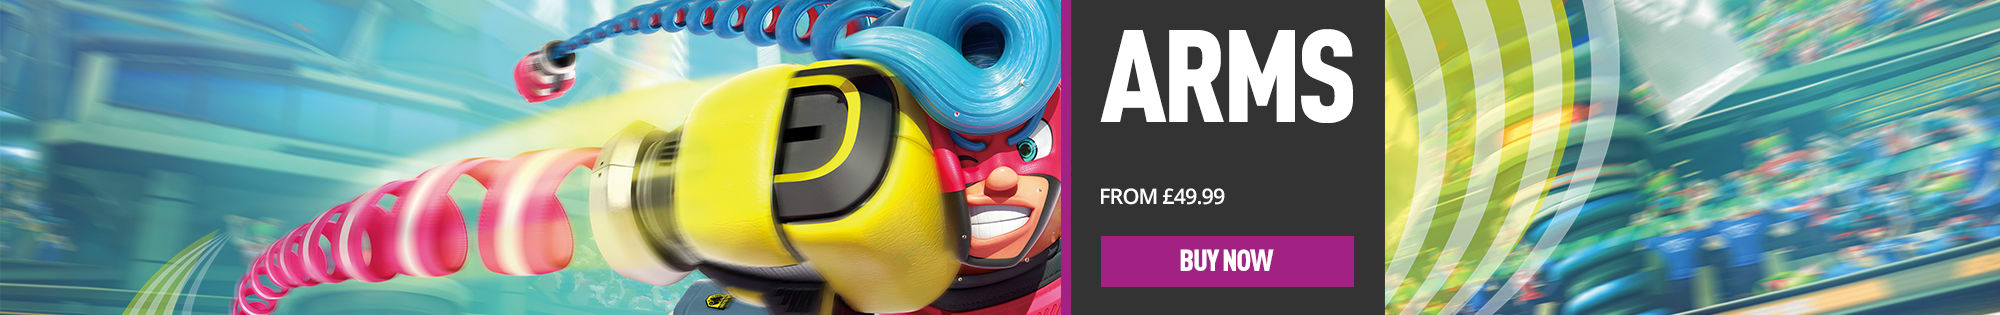 ARMS for Nintendo Switch - Homepage Banner